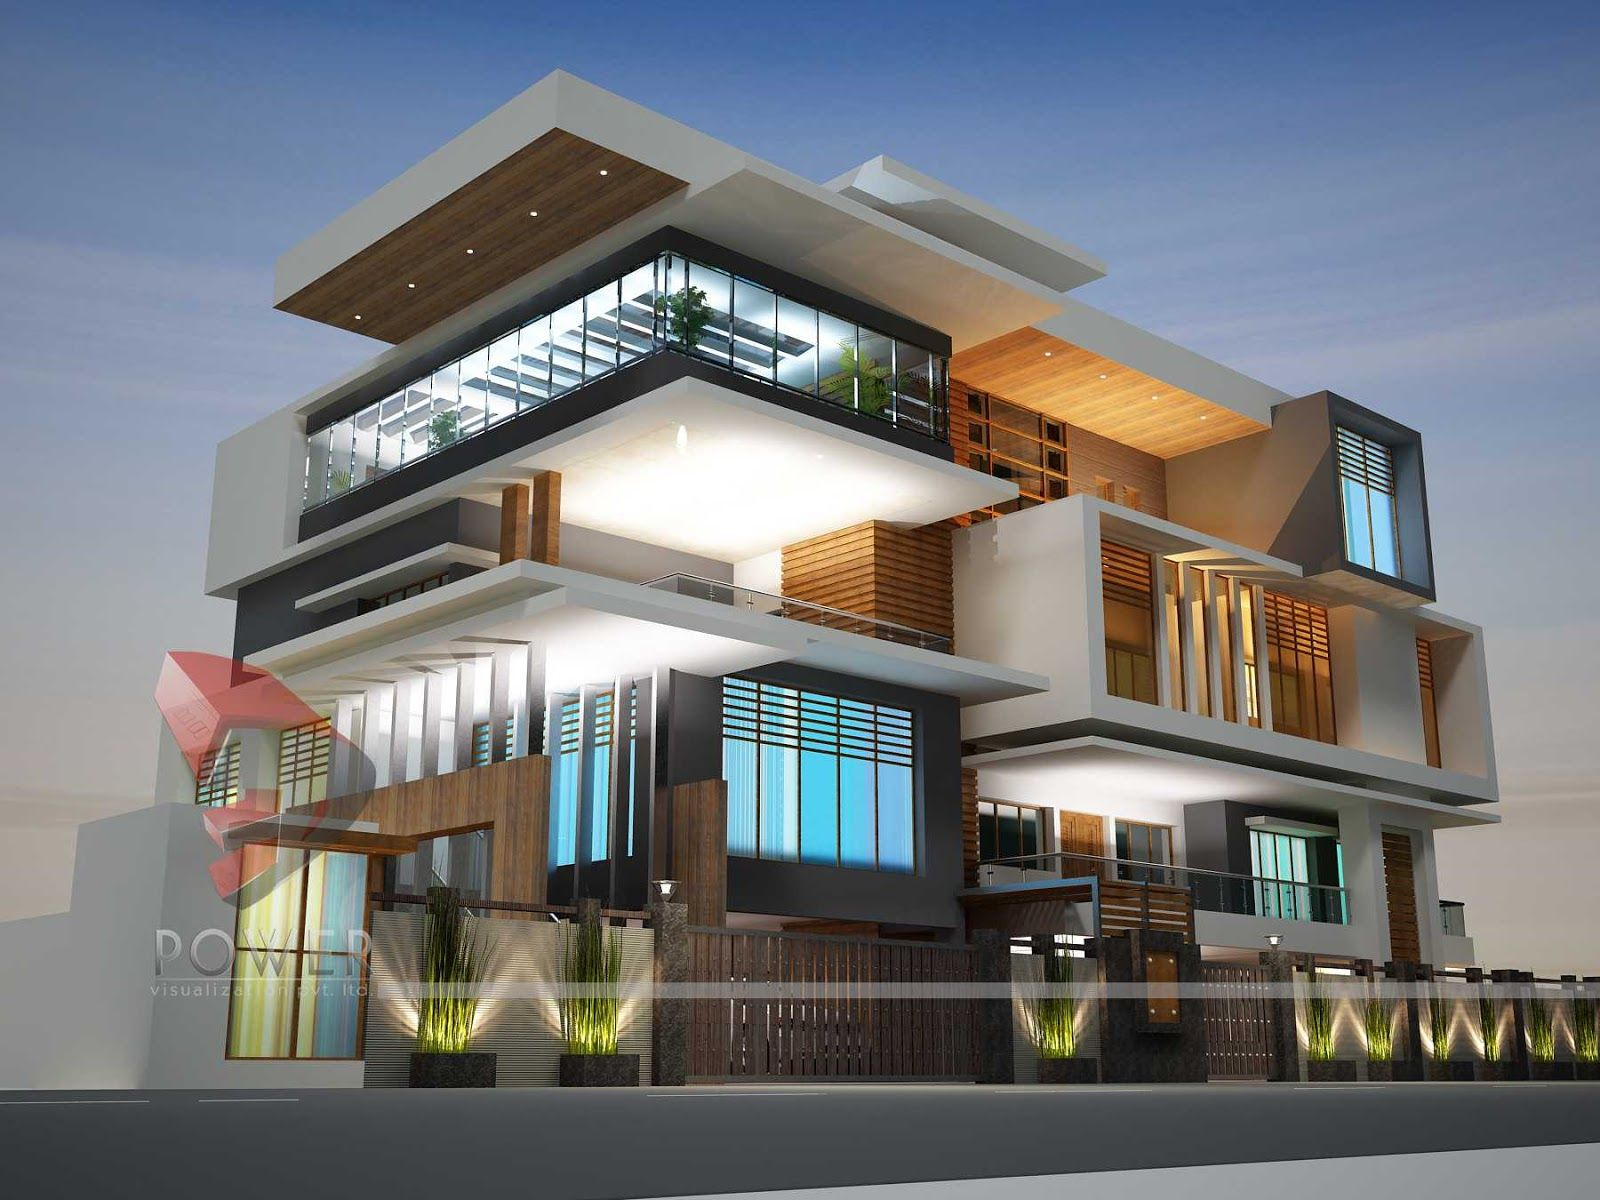 Ultra modern home designs home designs - For Example The Modern House Plans For Independent Bungalows Are Got More